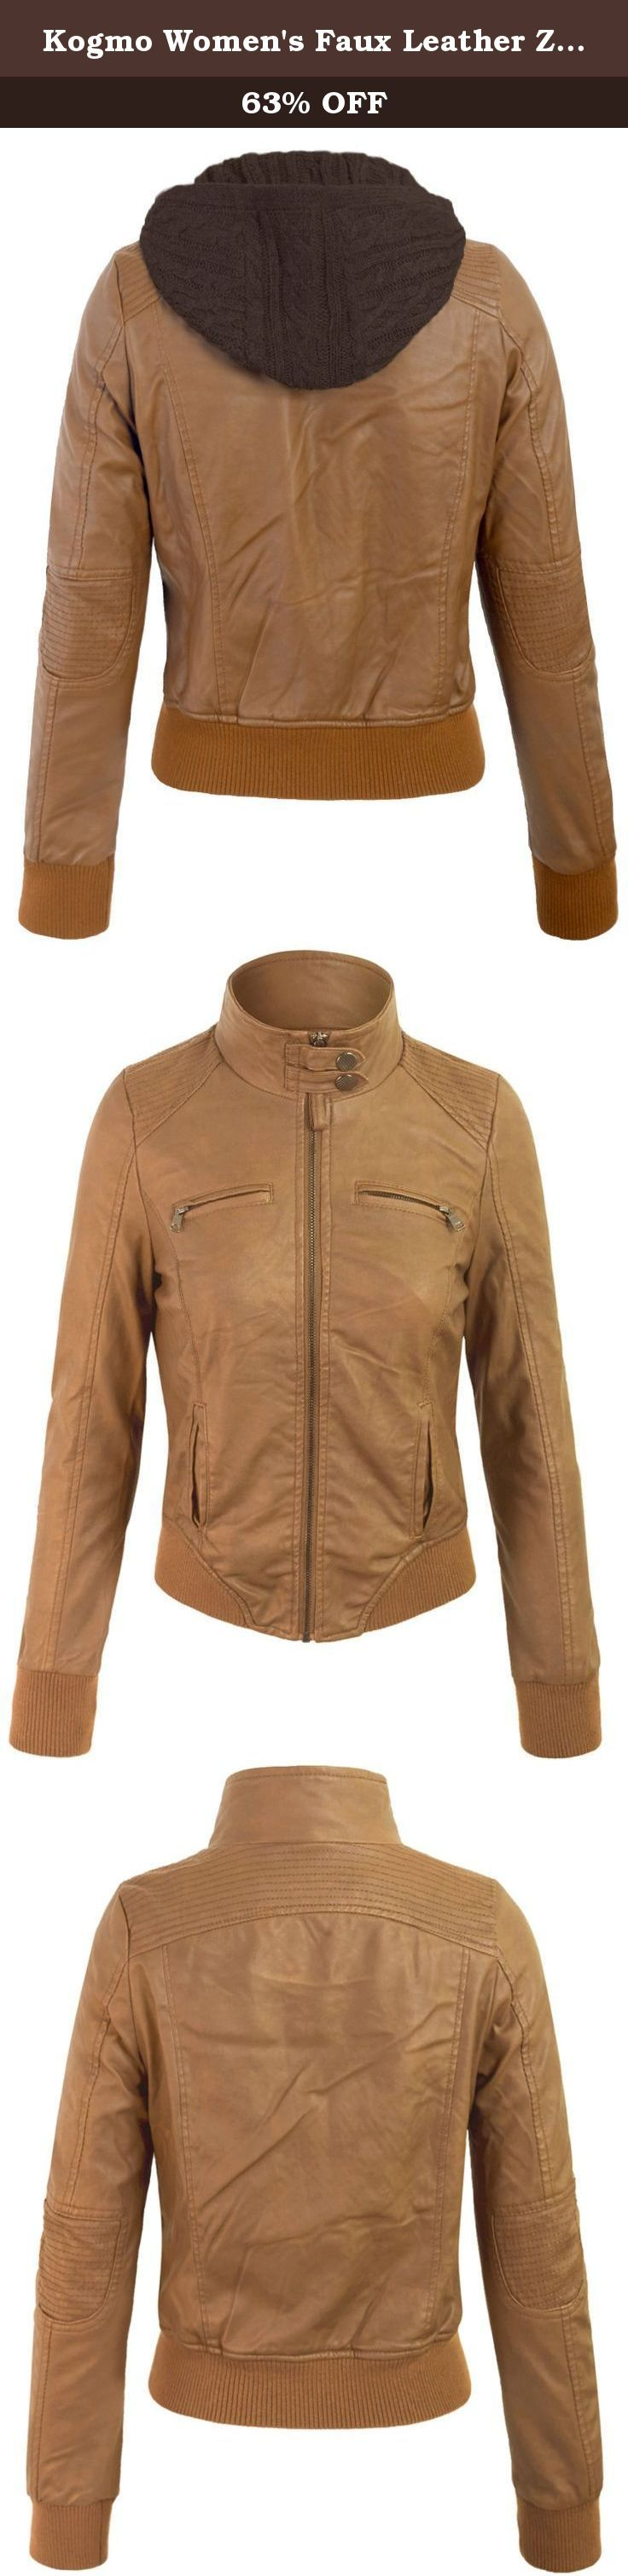 Kogmo Women's Faux Leather Zip Up Fur Lining Jacket with Knit Hoodie-S-CAMEL. Kogmo Women's Faux Leather Zip Up Fur Lining Jacket with Knit Hoodie.